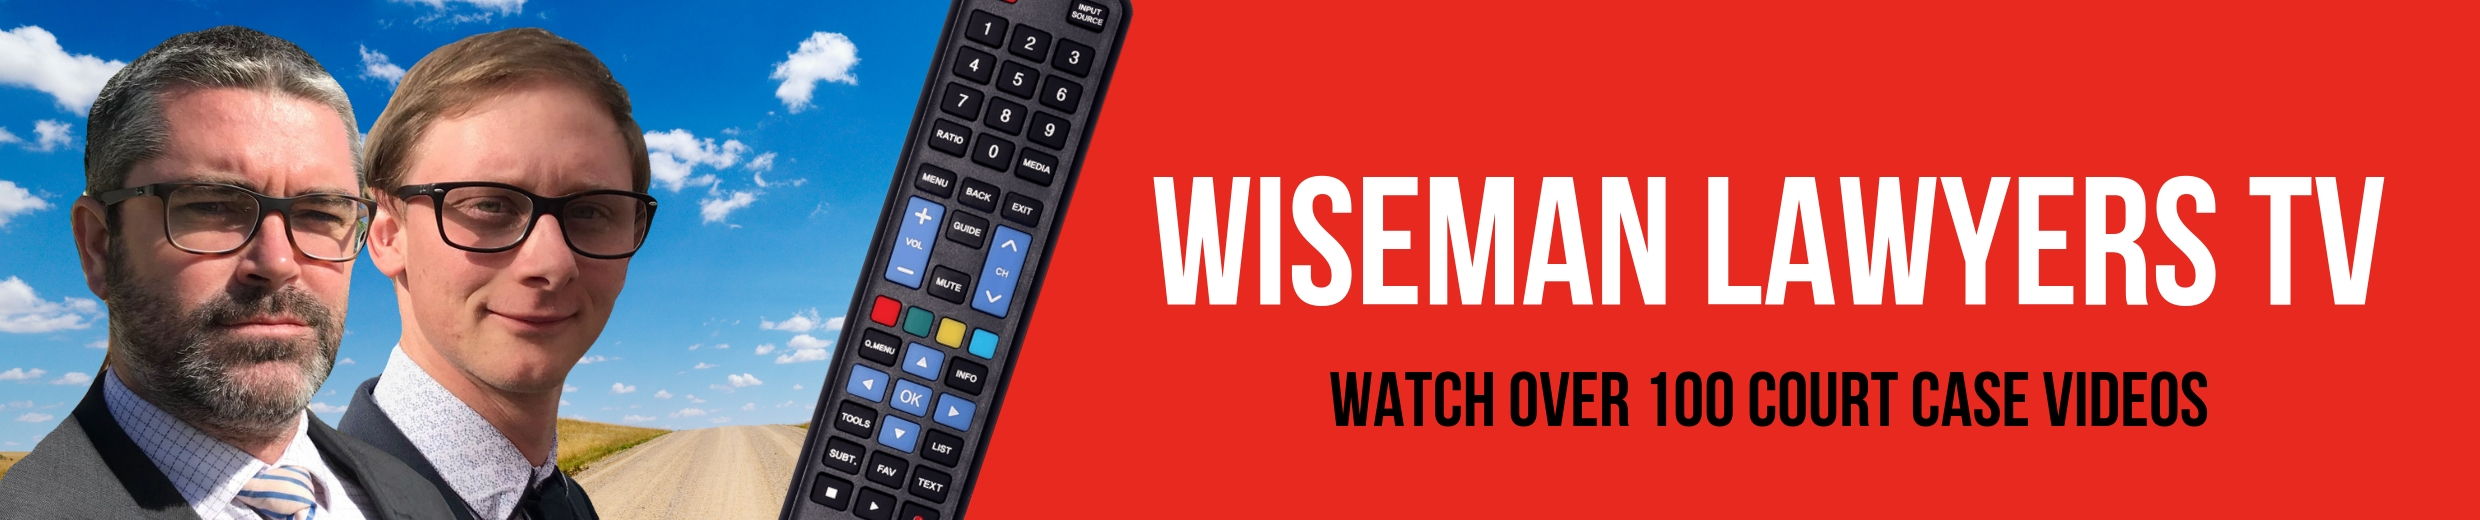 Wiseman Lawyers TV